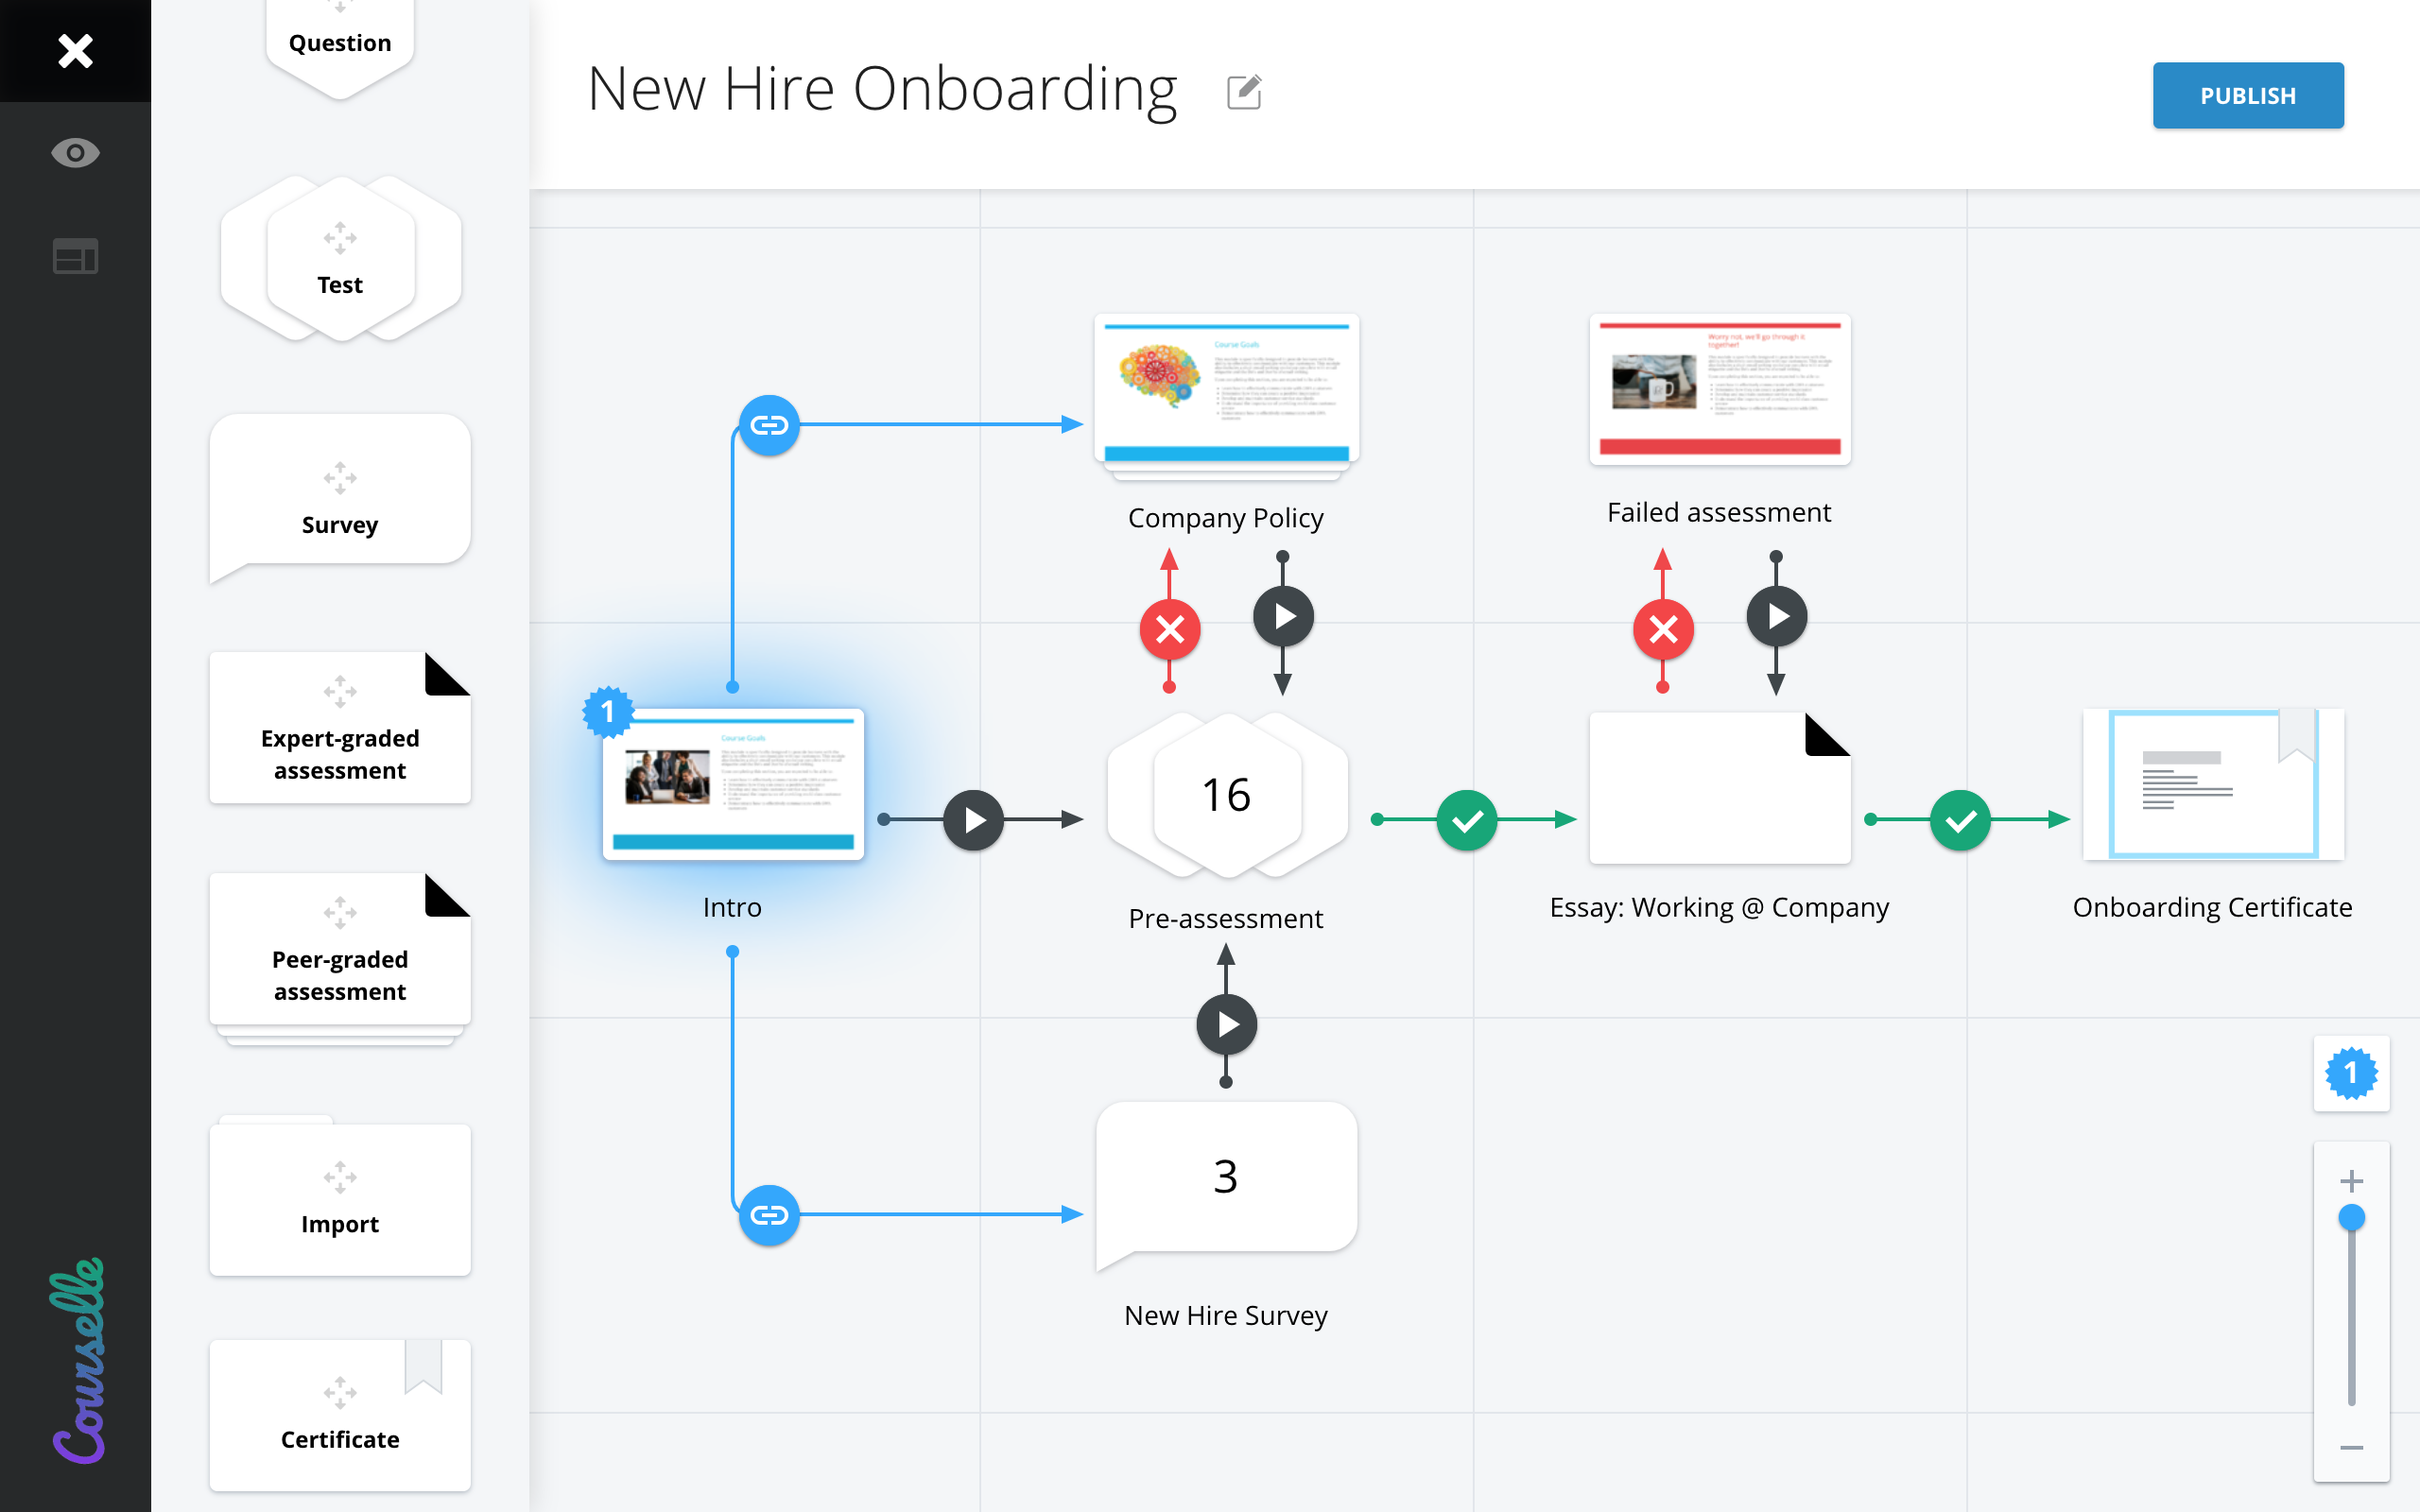 Geenio Software - Visual drag and drop course map builder allows to plan the flow of the online training and link various types of activities into engaging learning experience.